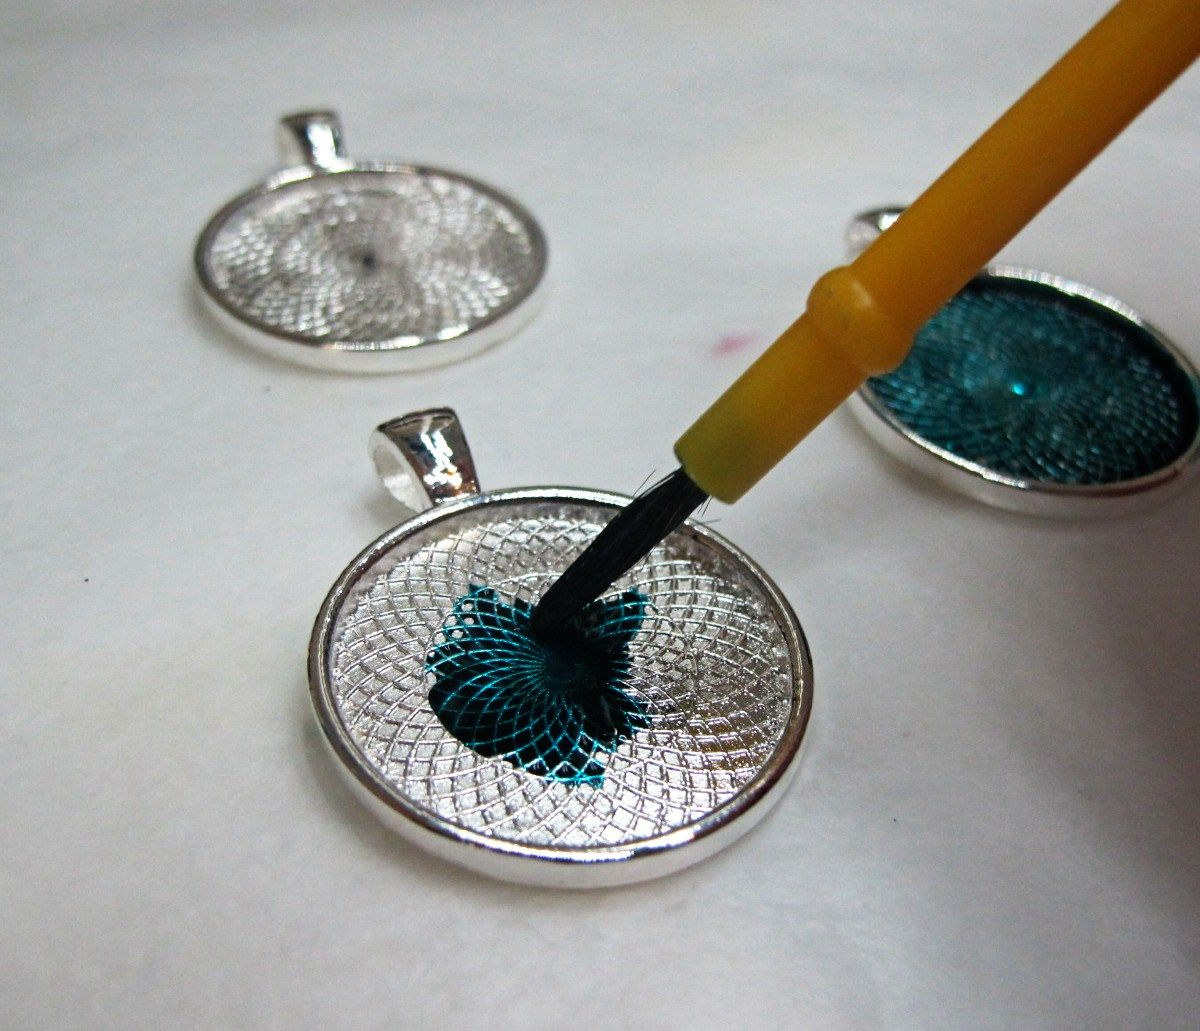 Resin pendant ideas | Resin jewelry making, Resin jewelry